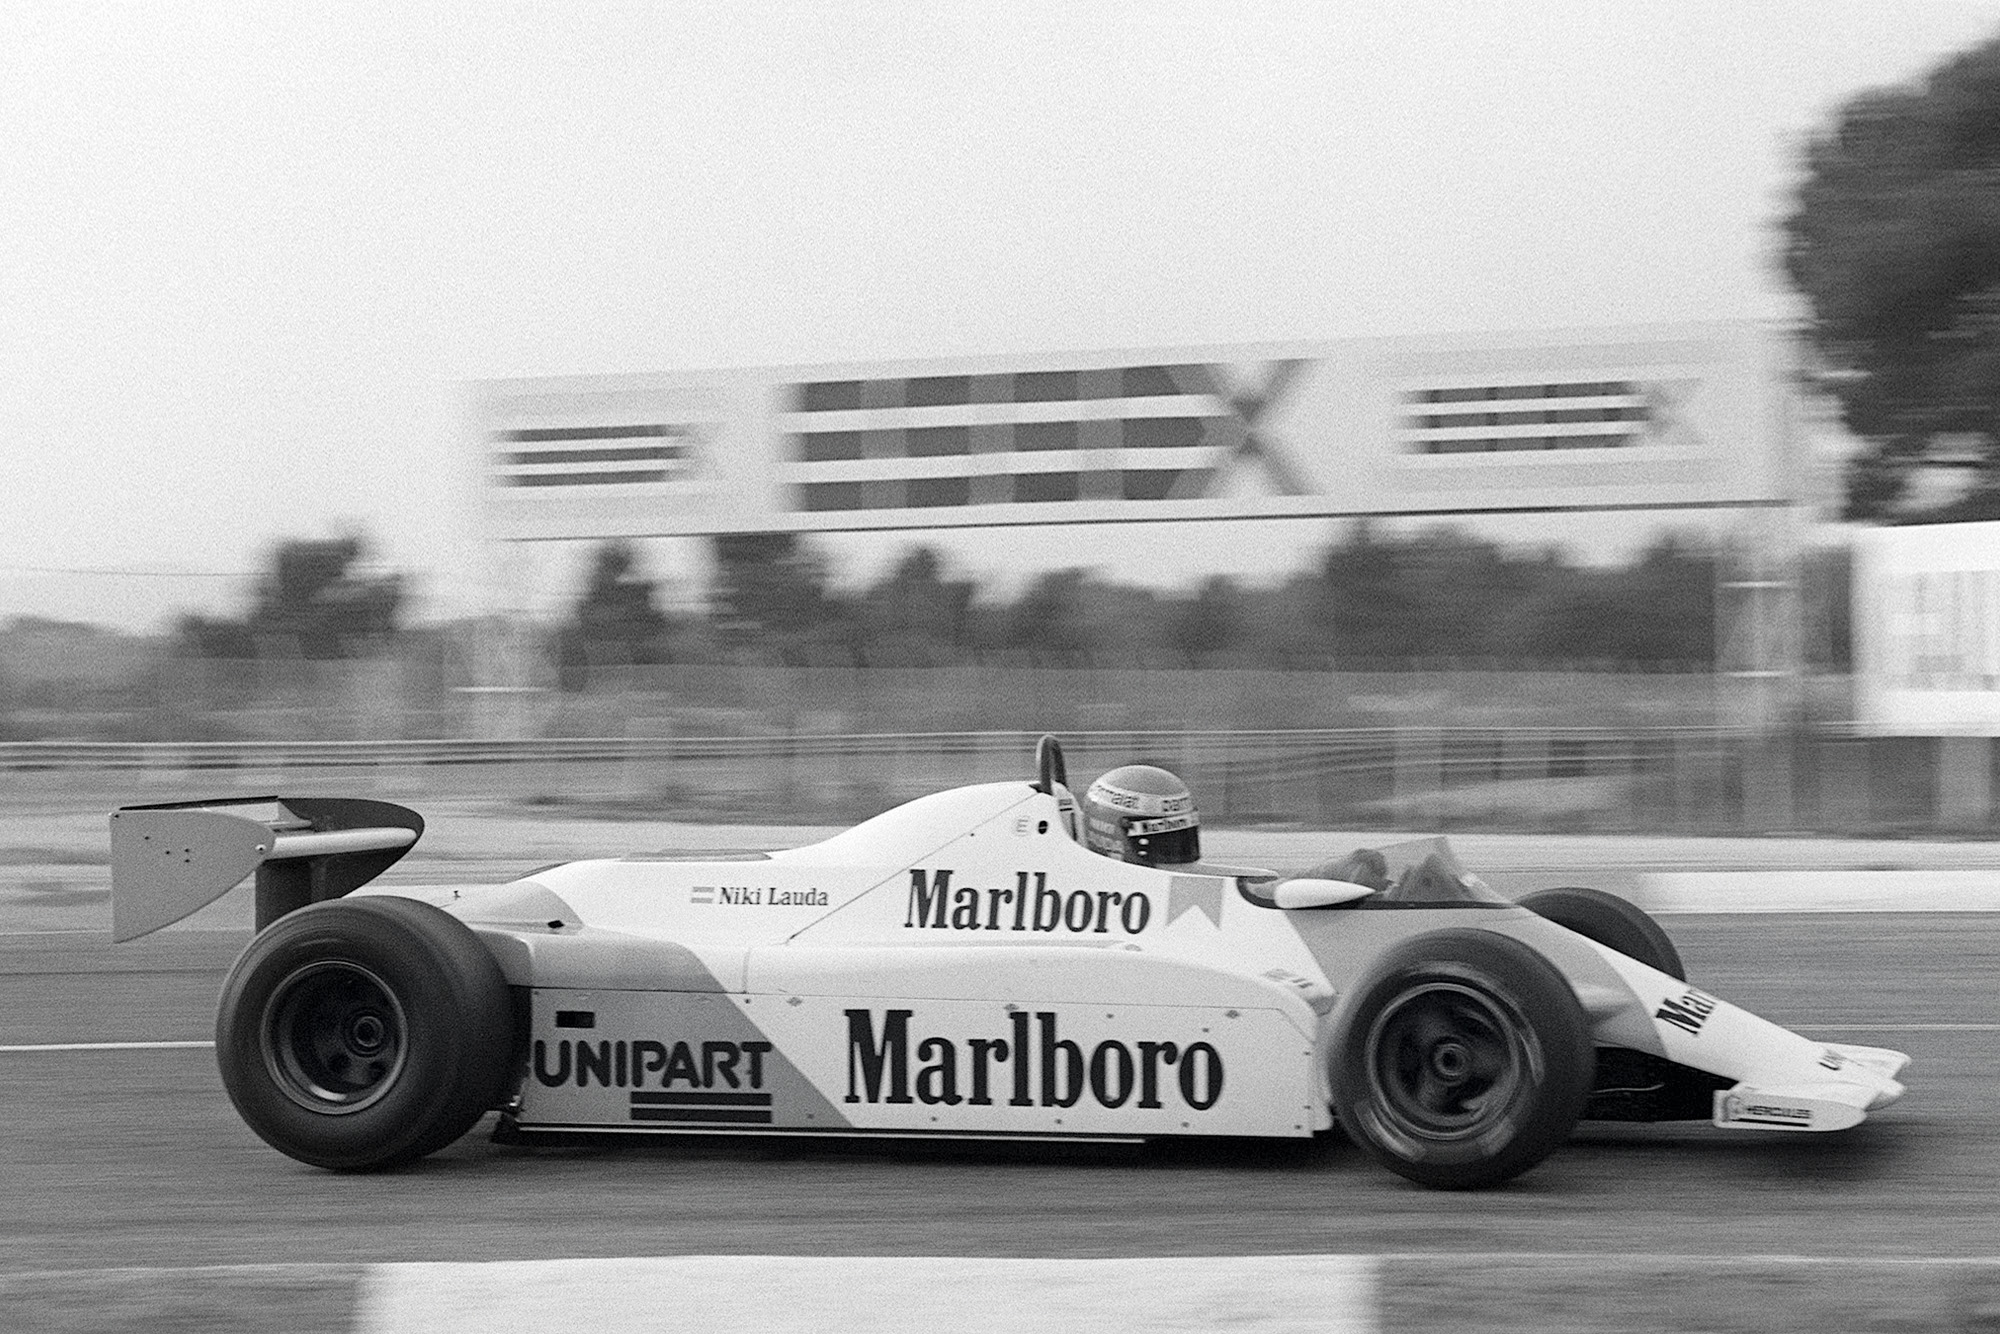 Niki Lauda practices at the wheel of his McLaren on the Le Castellet racing circuit 20 November 1981